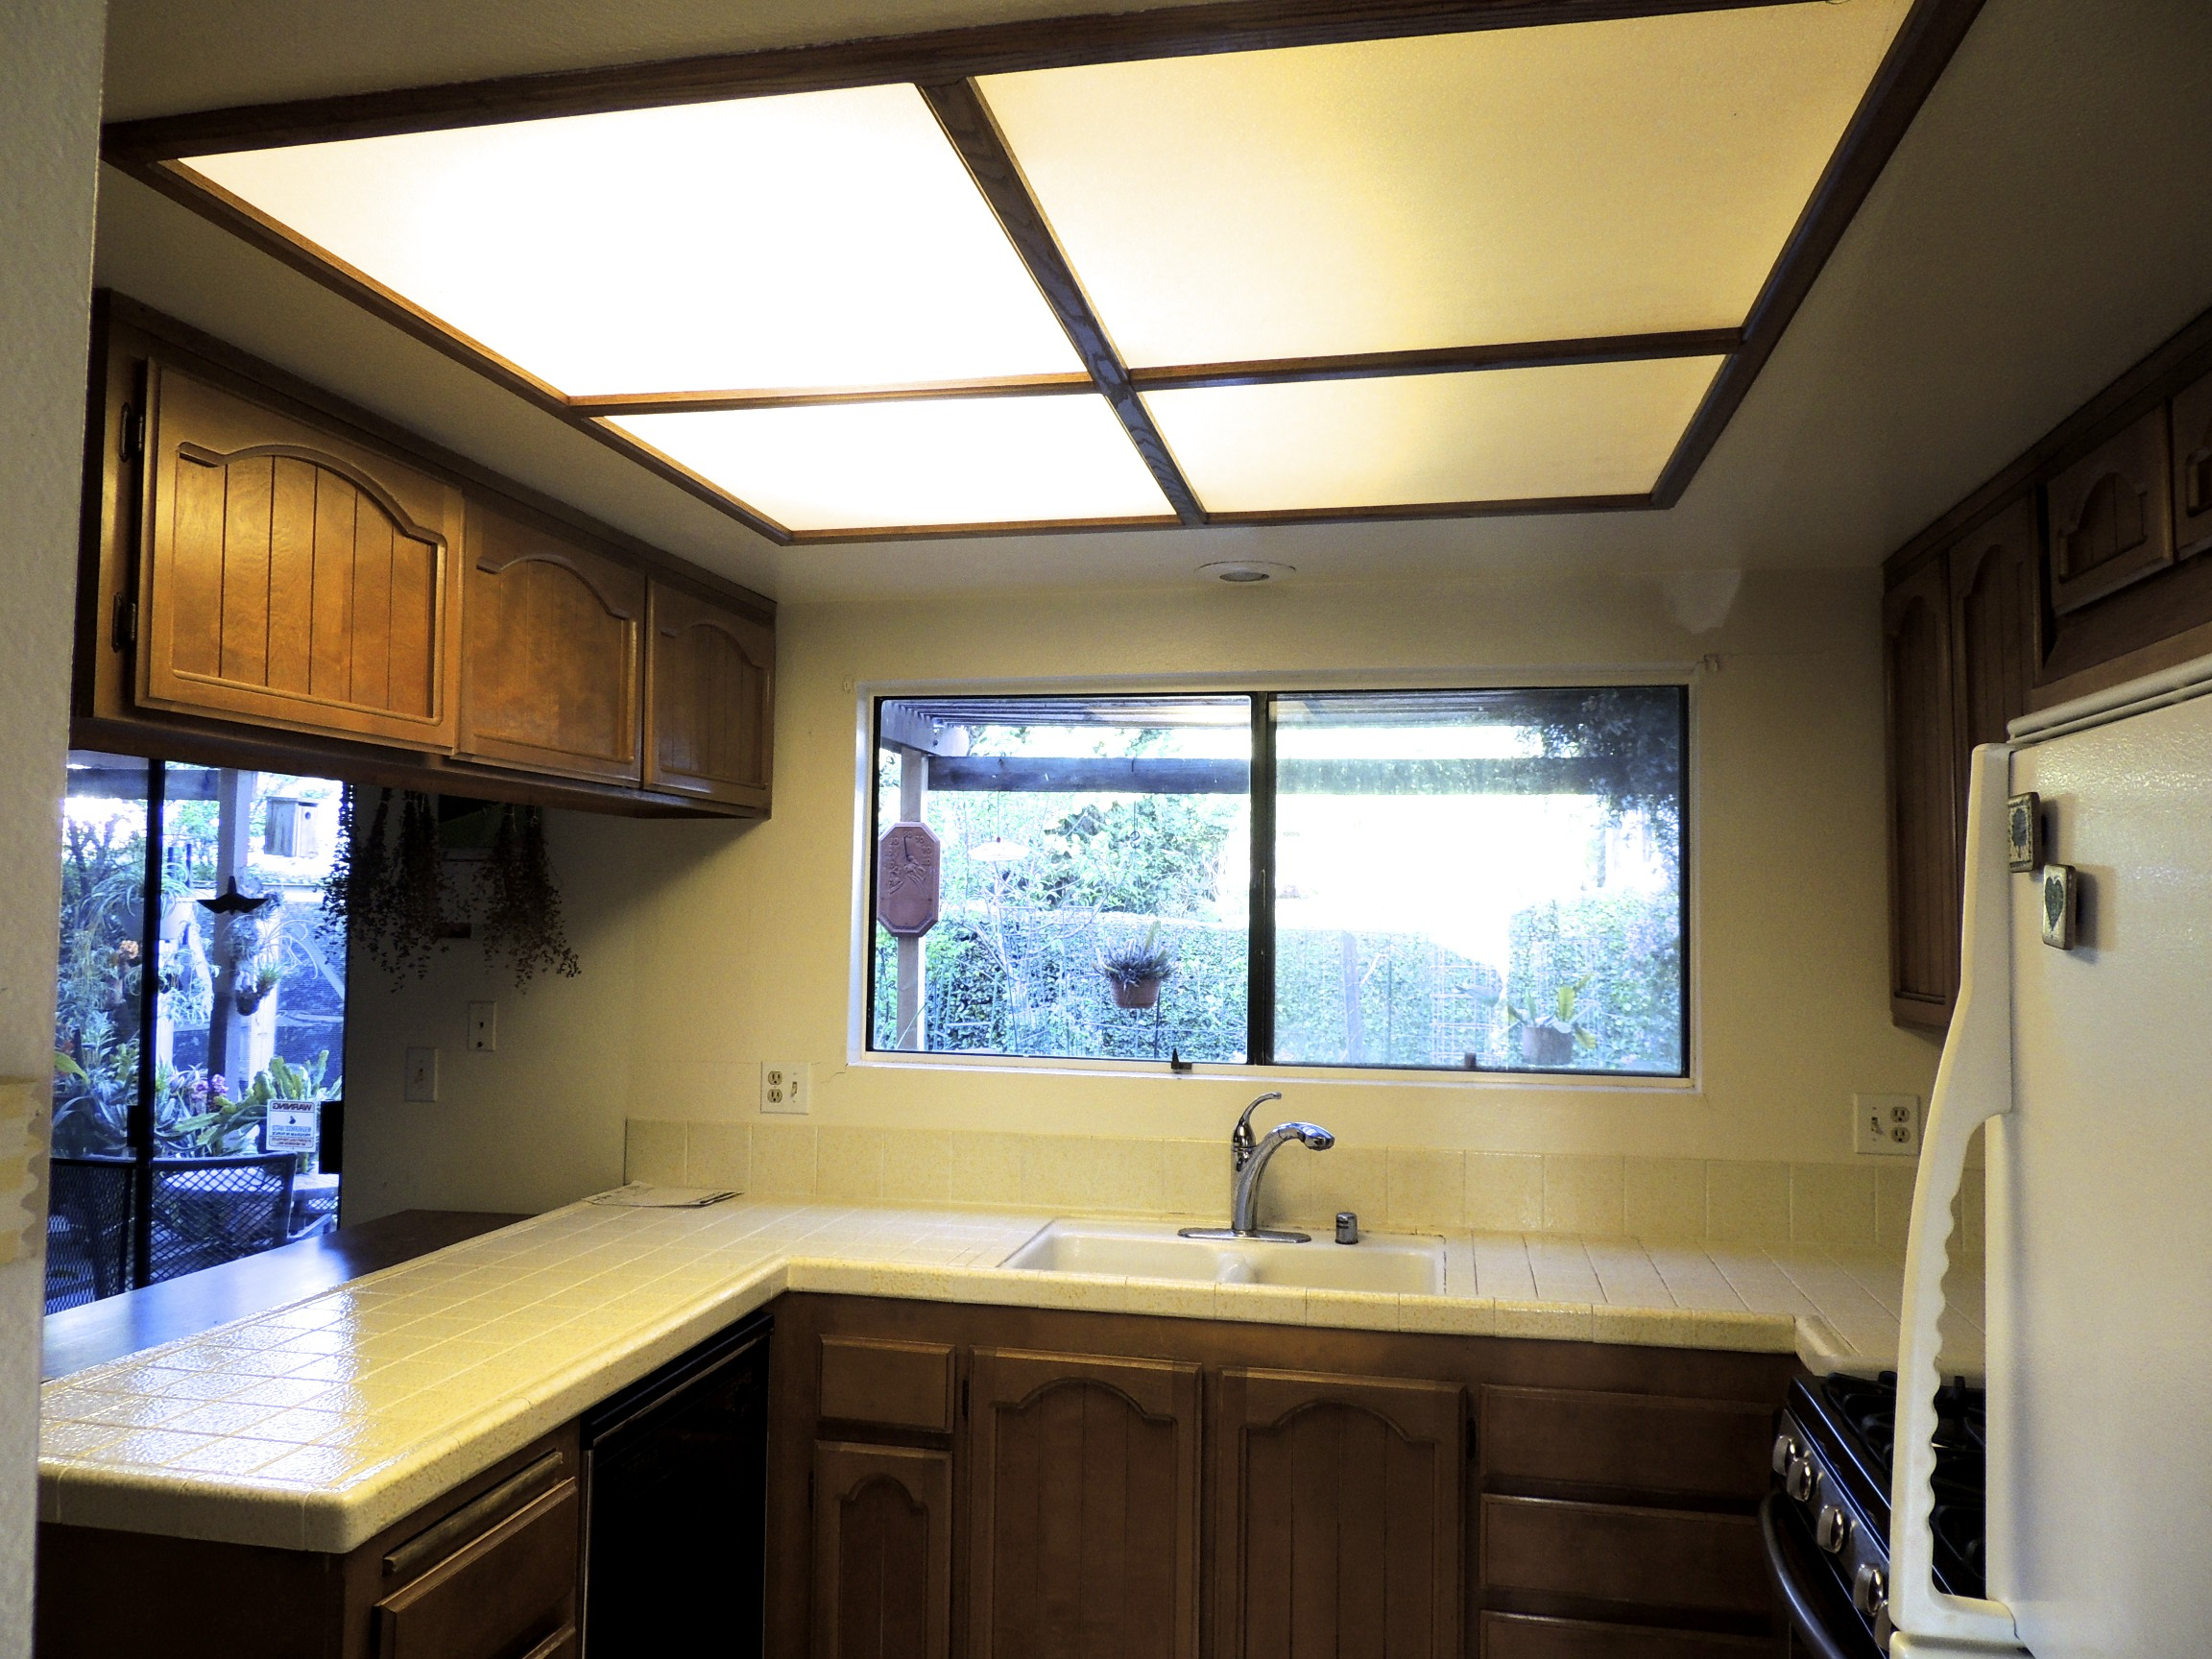 Woodworking lou murray 39 s green world - How to get your kitchen ceiling lights right ...